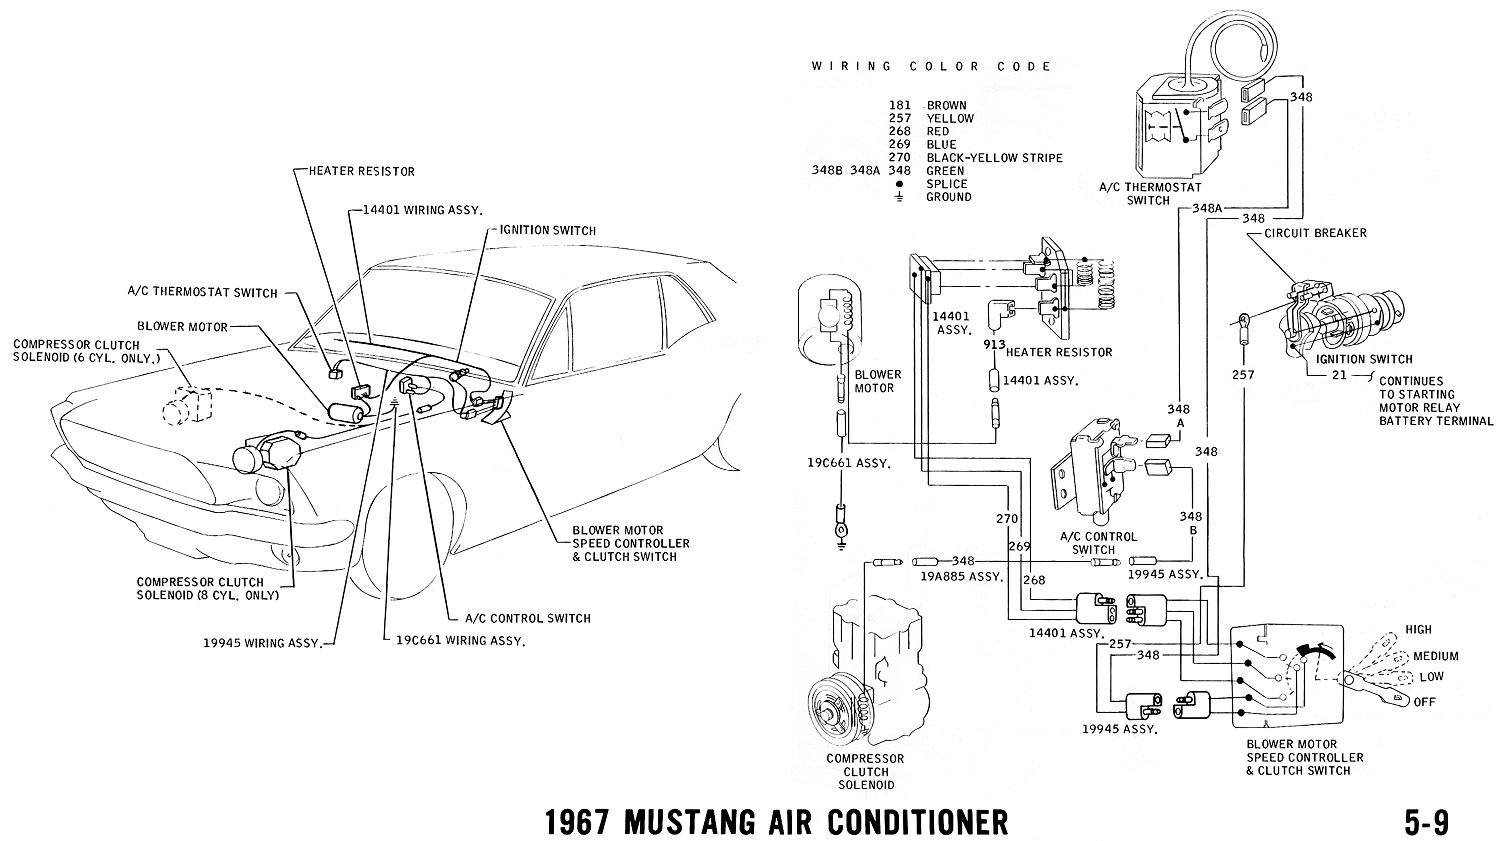 1969 Ford Mustang Wiring Schematic And Vacuum Diagrams Reinvent 1967 Average Joe Restoration Rh Averagejoerestoration Com